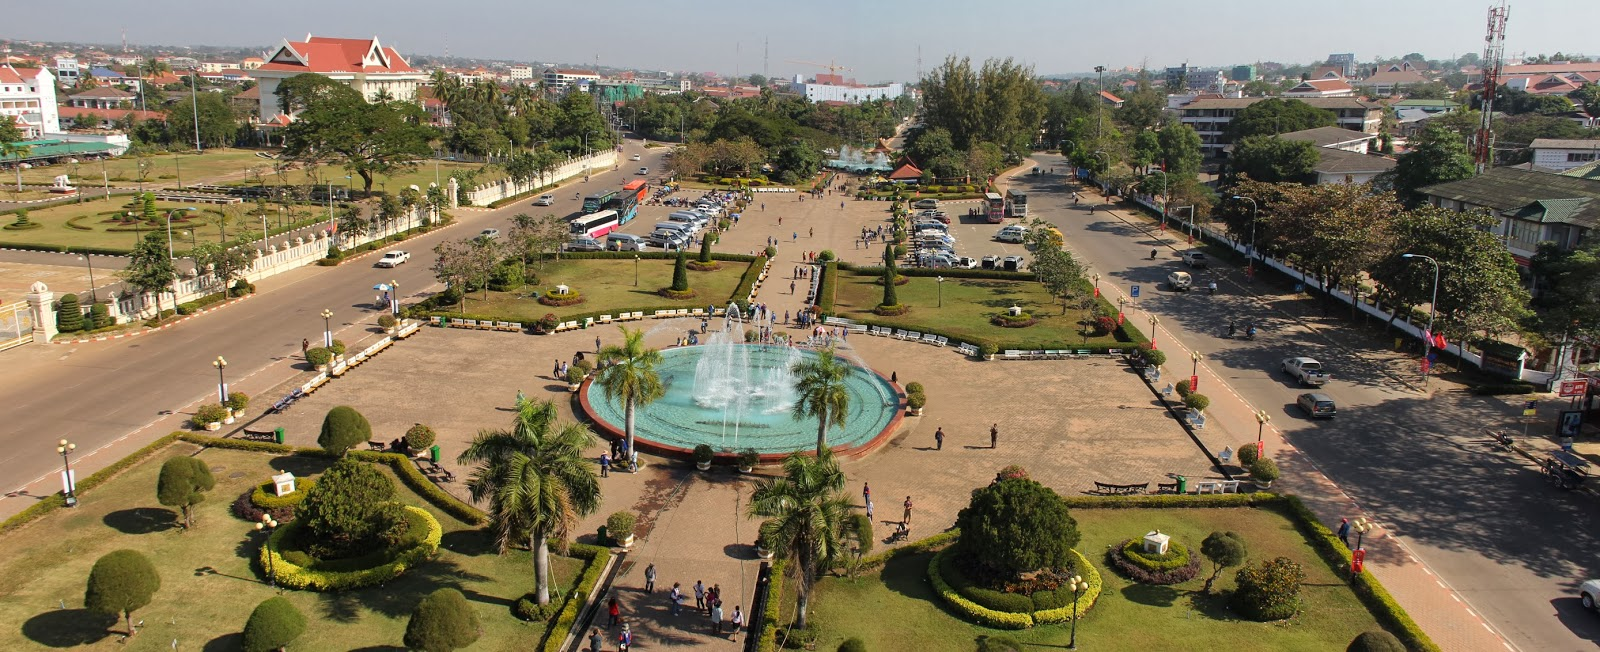 View from Patuxay monument over the city of Vientiane, Laos.